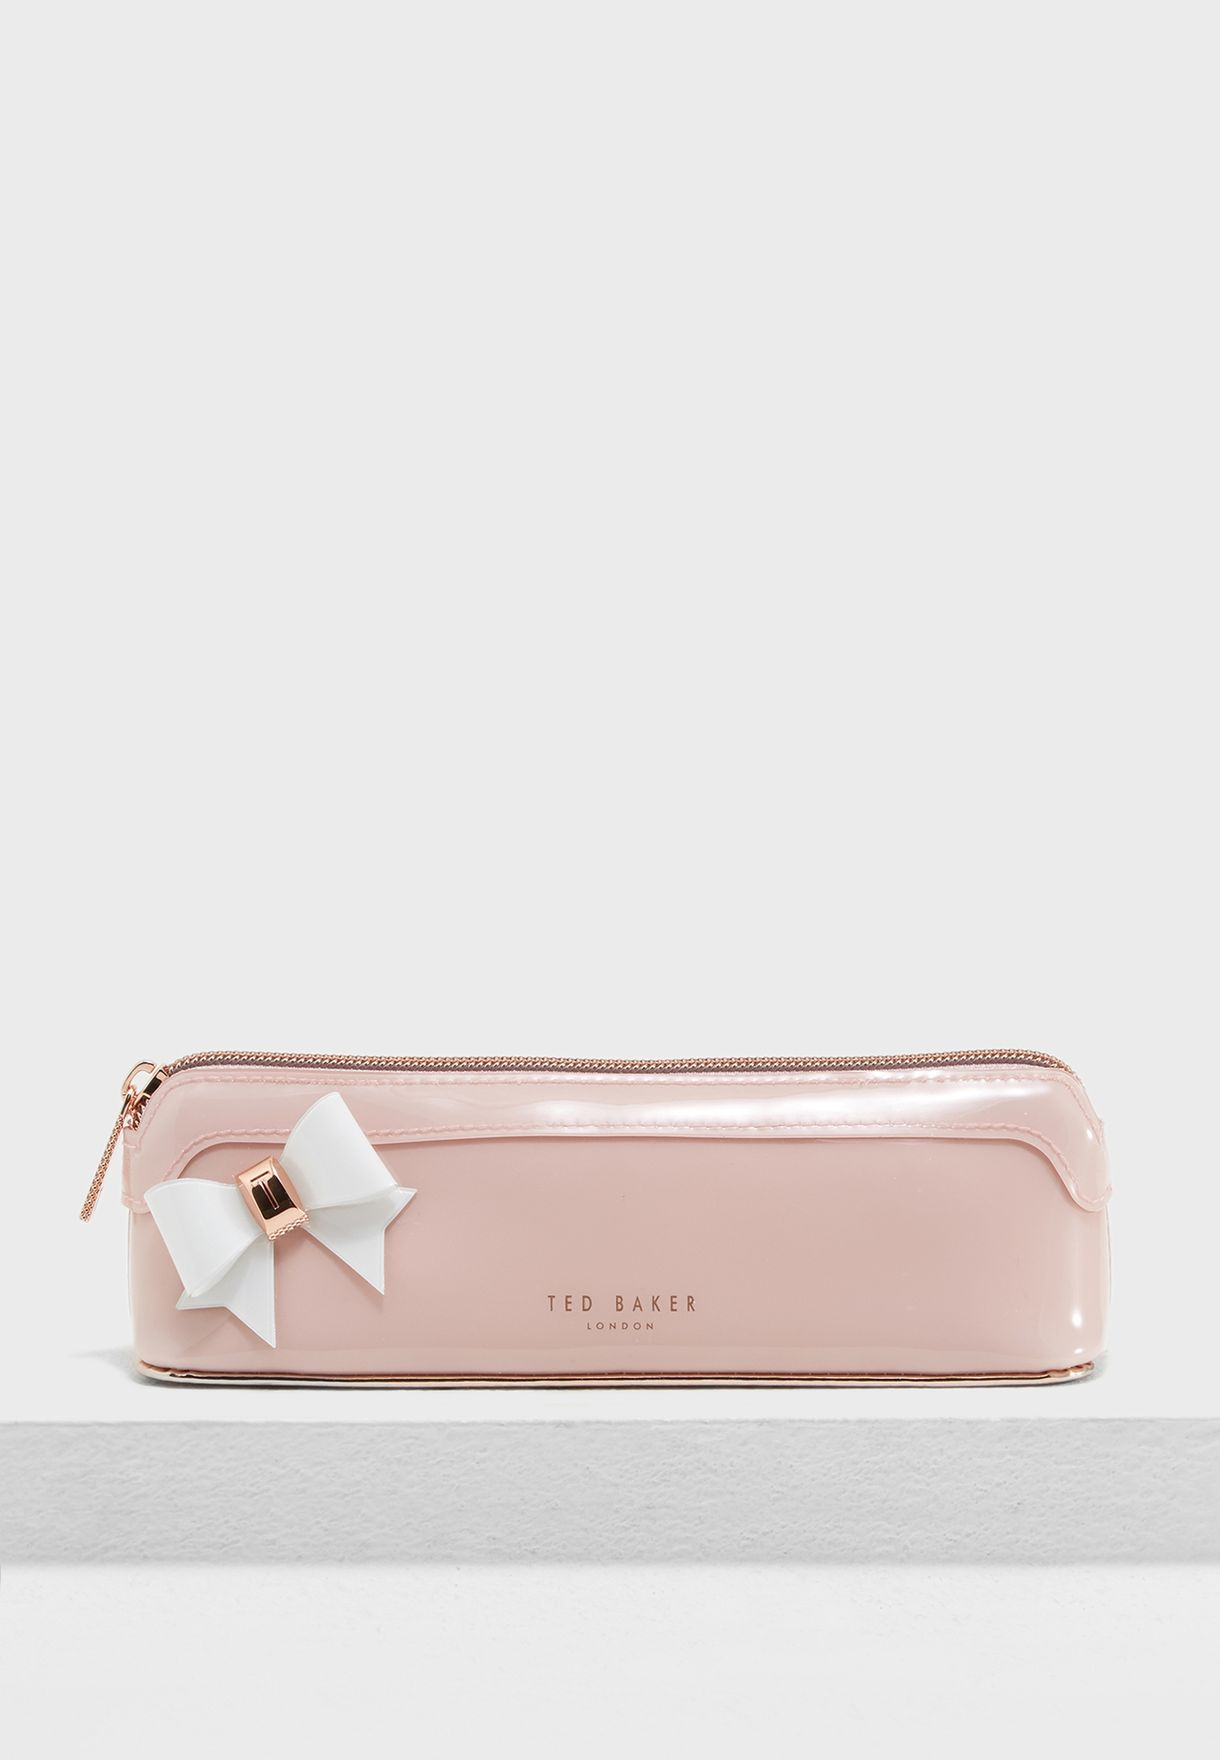 fd251c70a Shop Ted baker pink Bow Pencil Case 146589 for Women in UAE ...